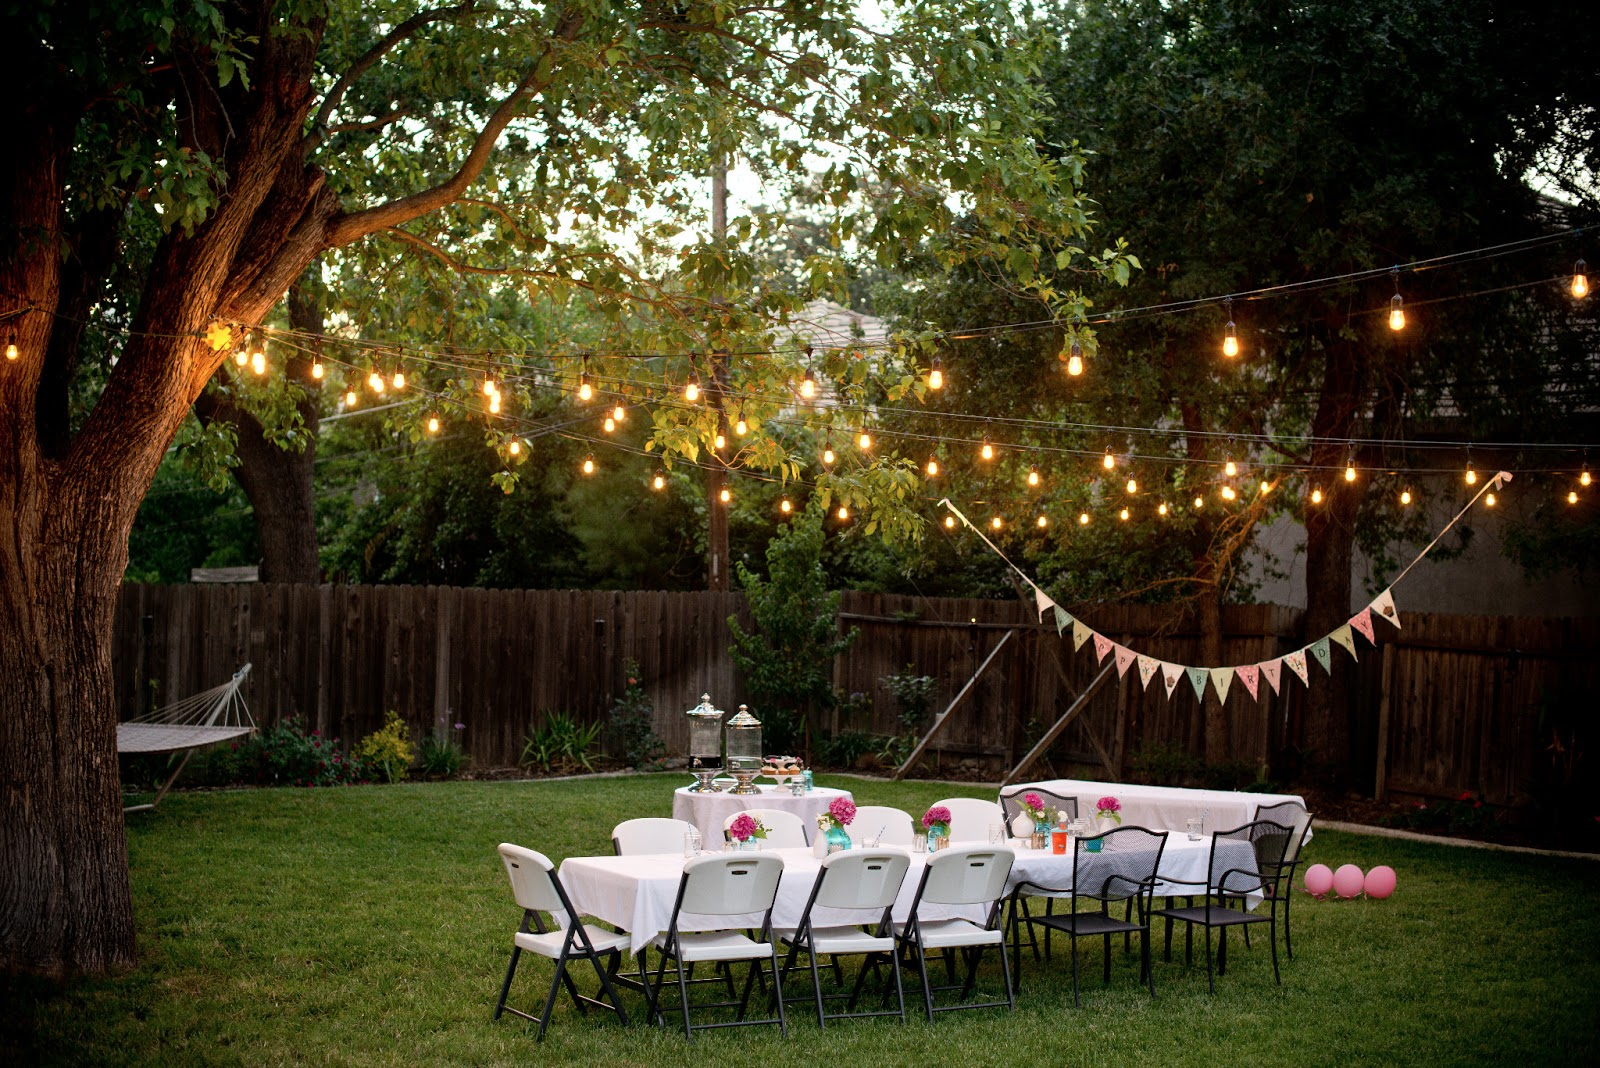 Backyard Party Decoration Ideas For Adults Mystical Designs And Tags pertaining to 14 Some of the Coolest Ways How to Makeover Backyard Party Decoration Ideas